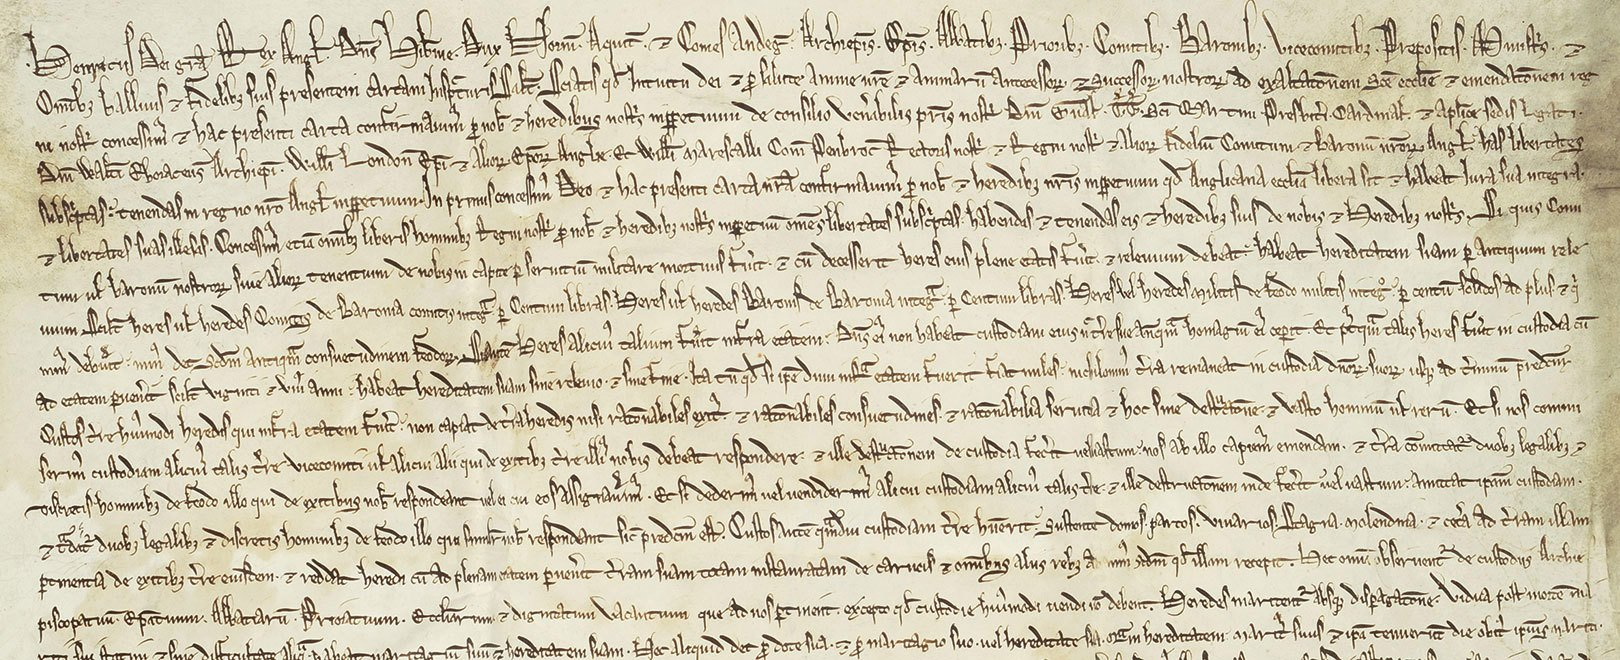 The 1217 Magna Carta